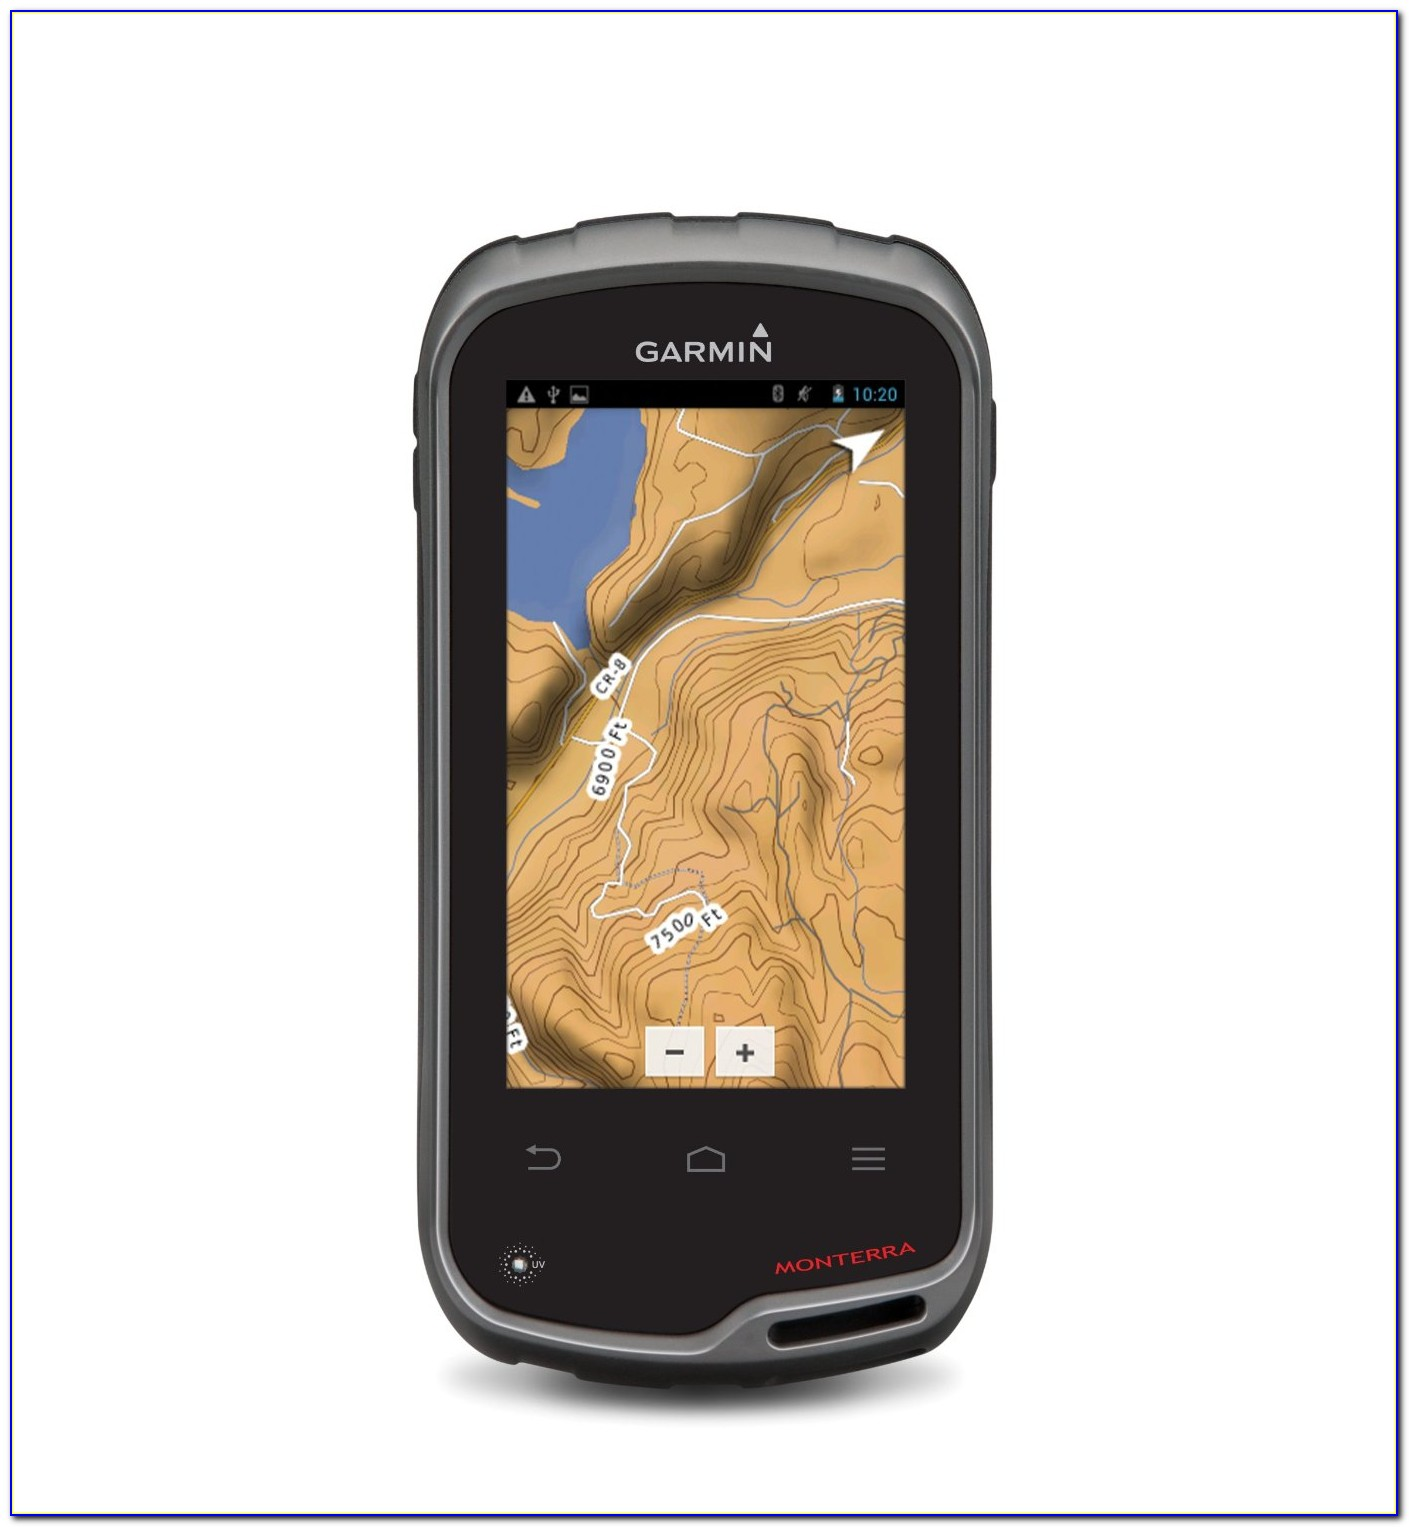 Garmin Handheld Gps Map Downloads